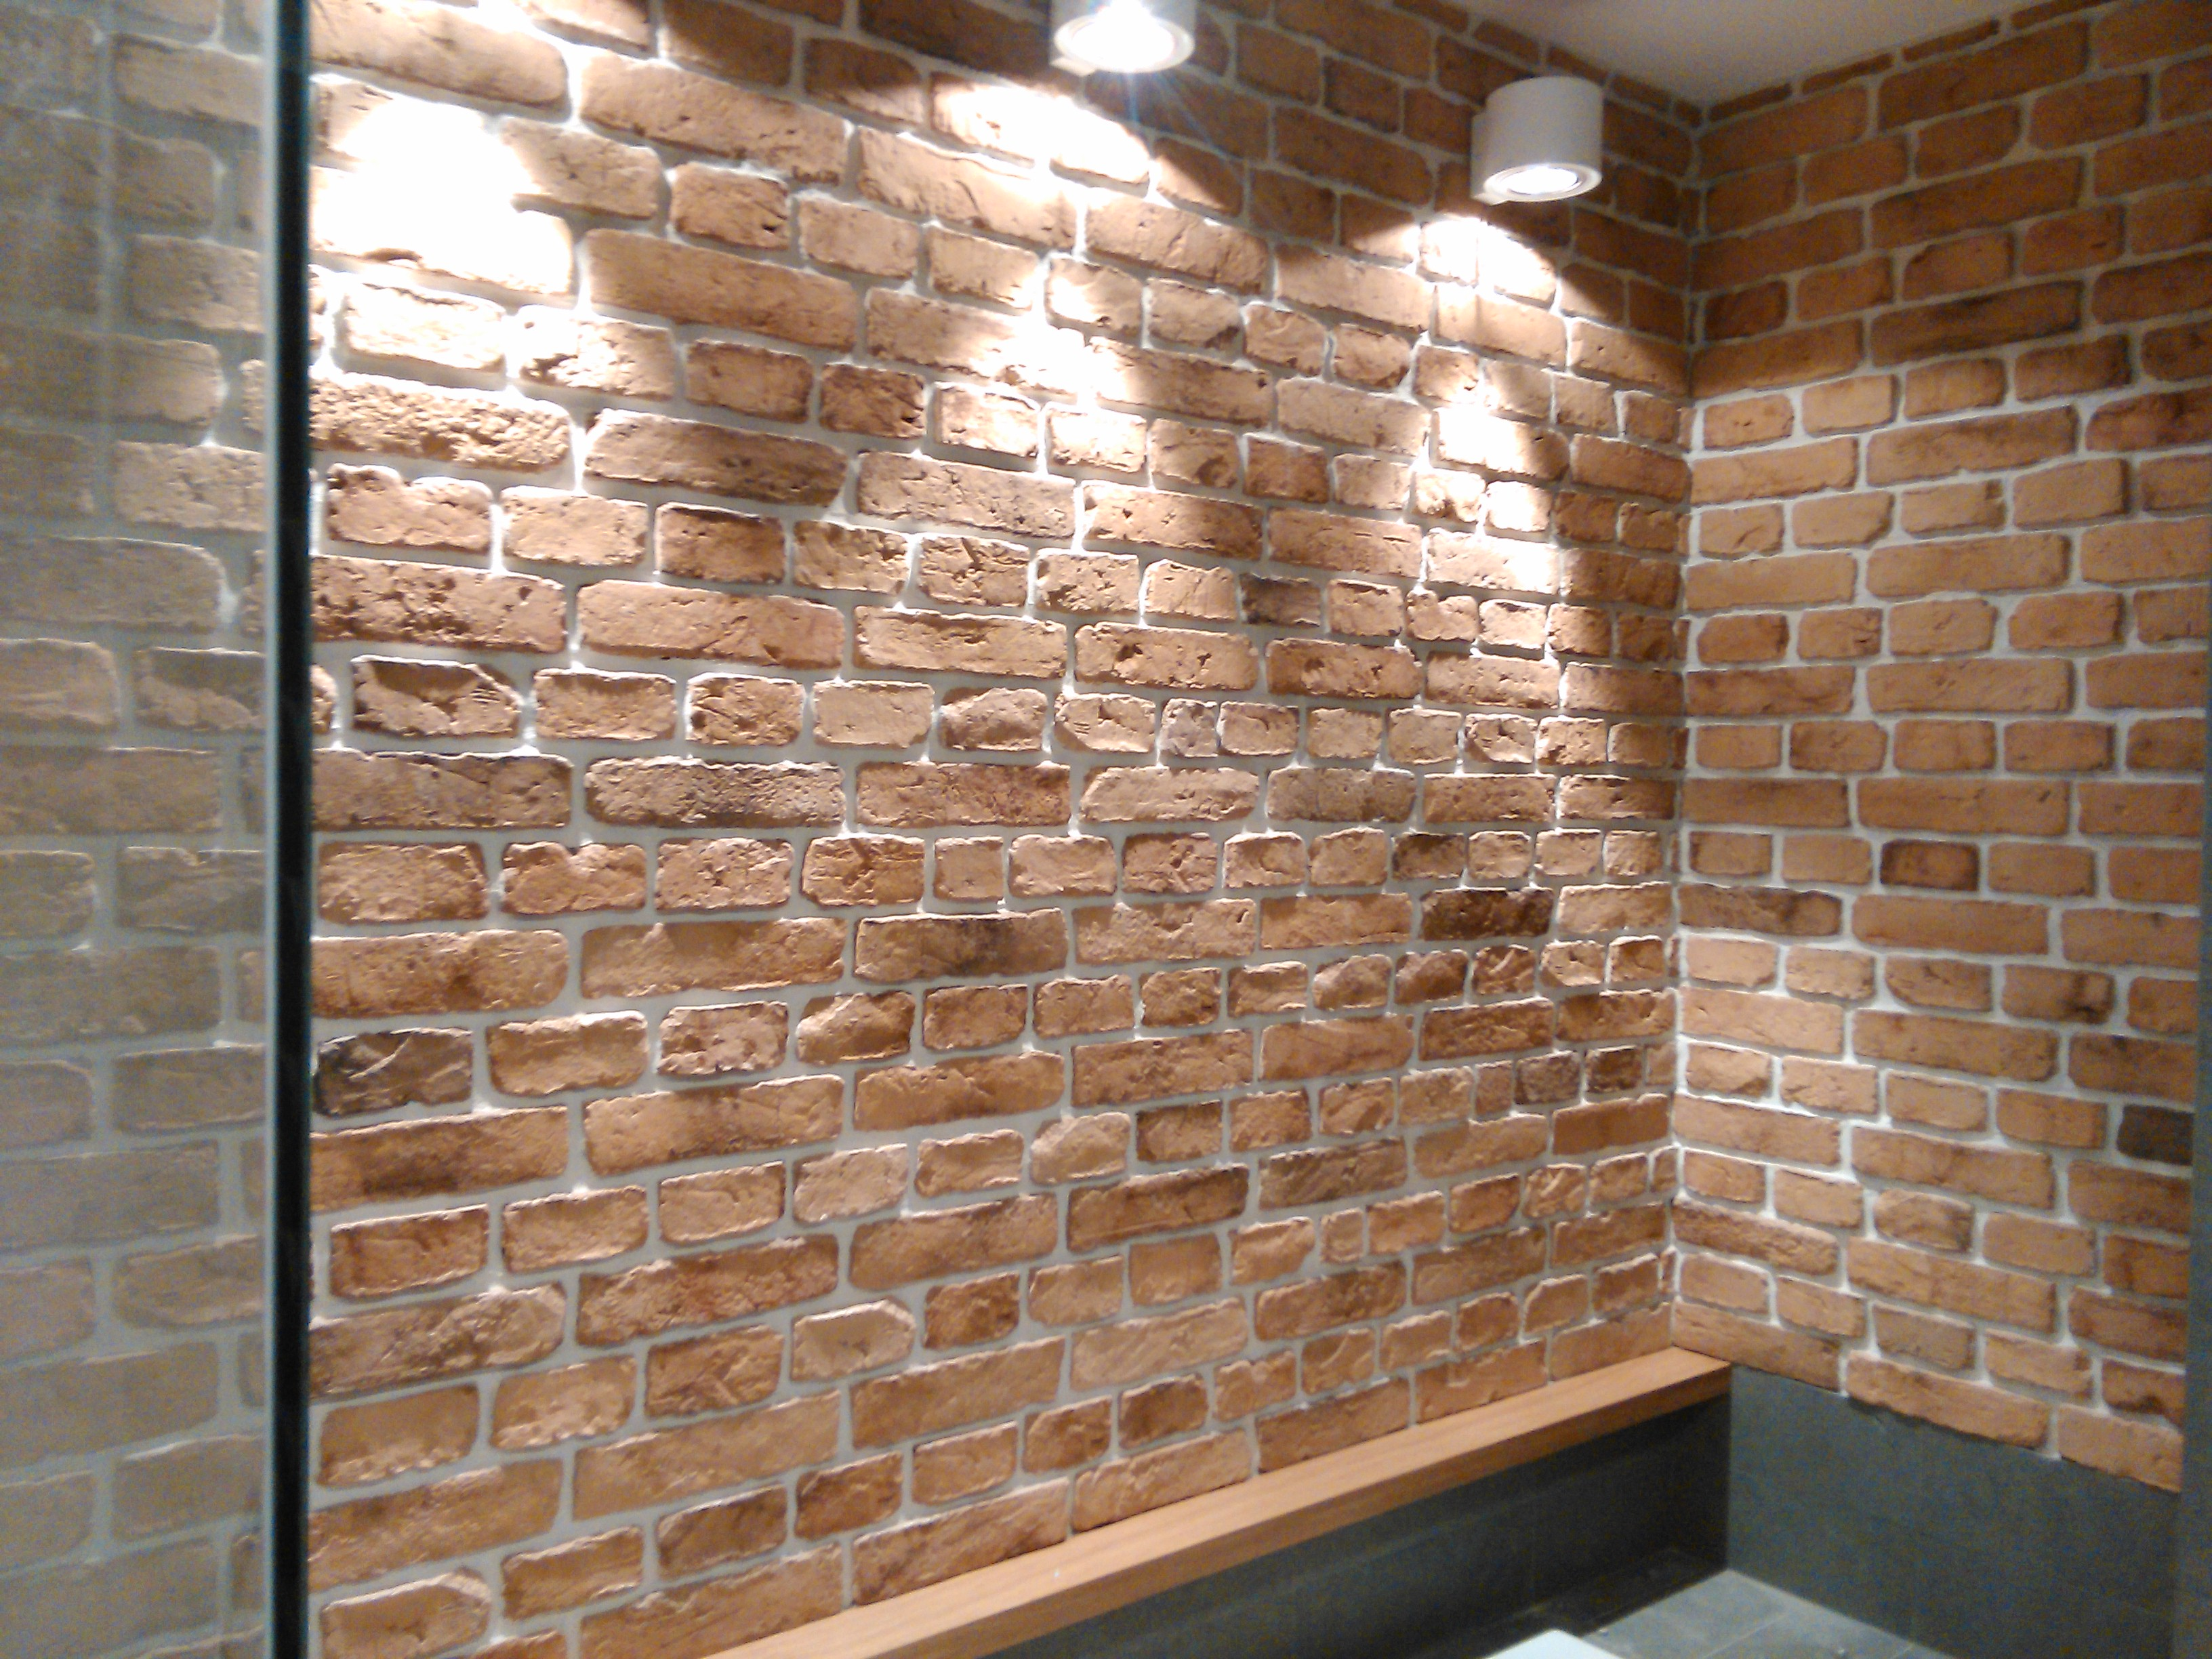 Brick Wall Cladding Tiles Tile Design Ideas